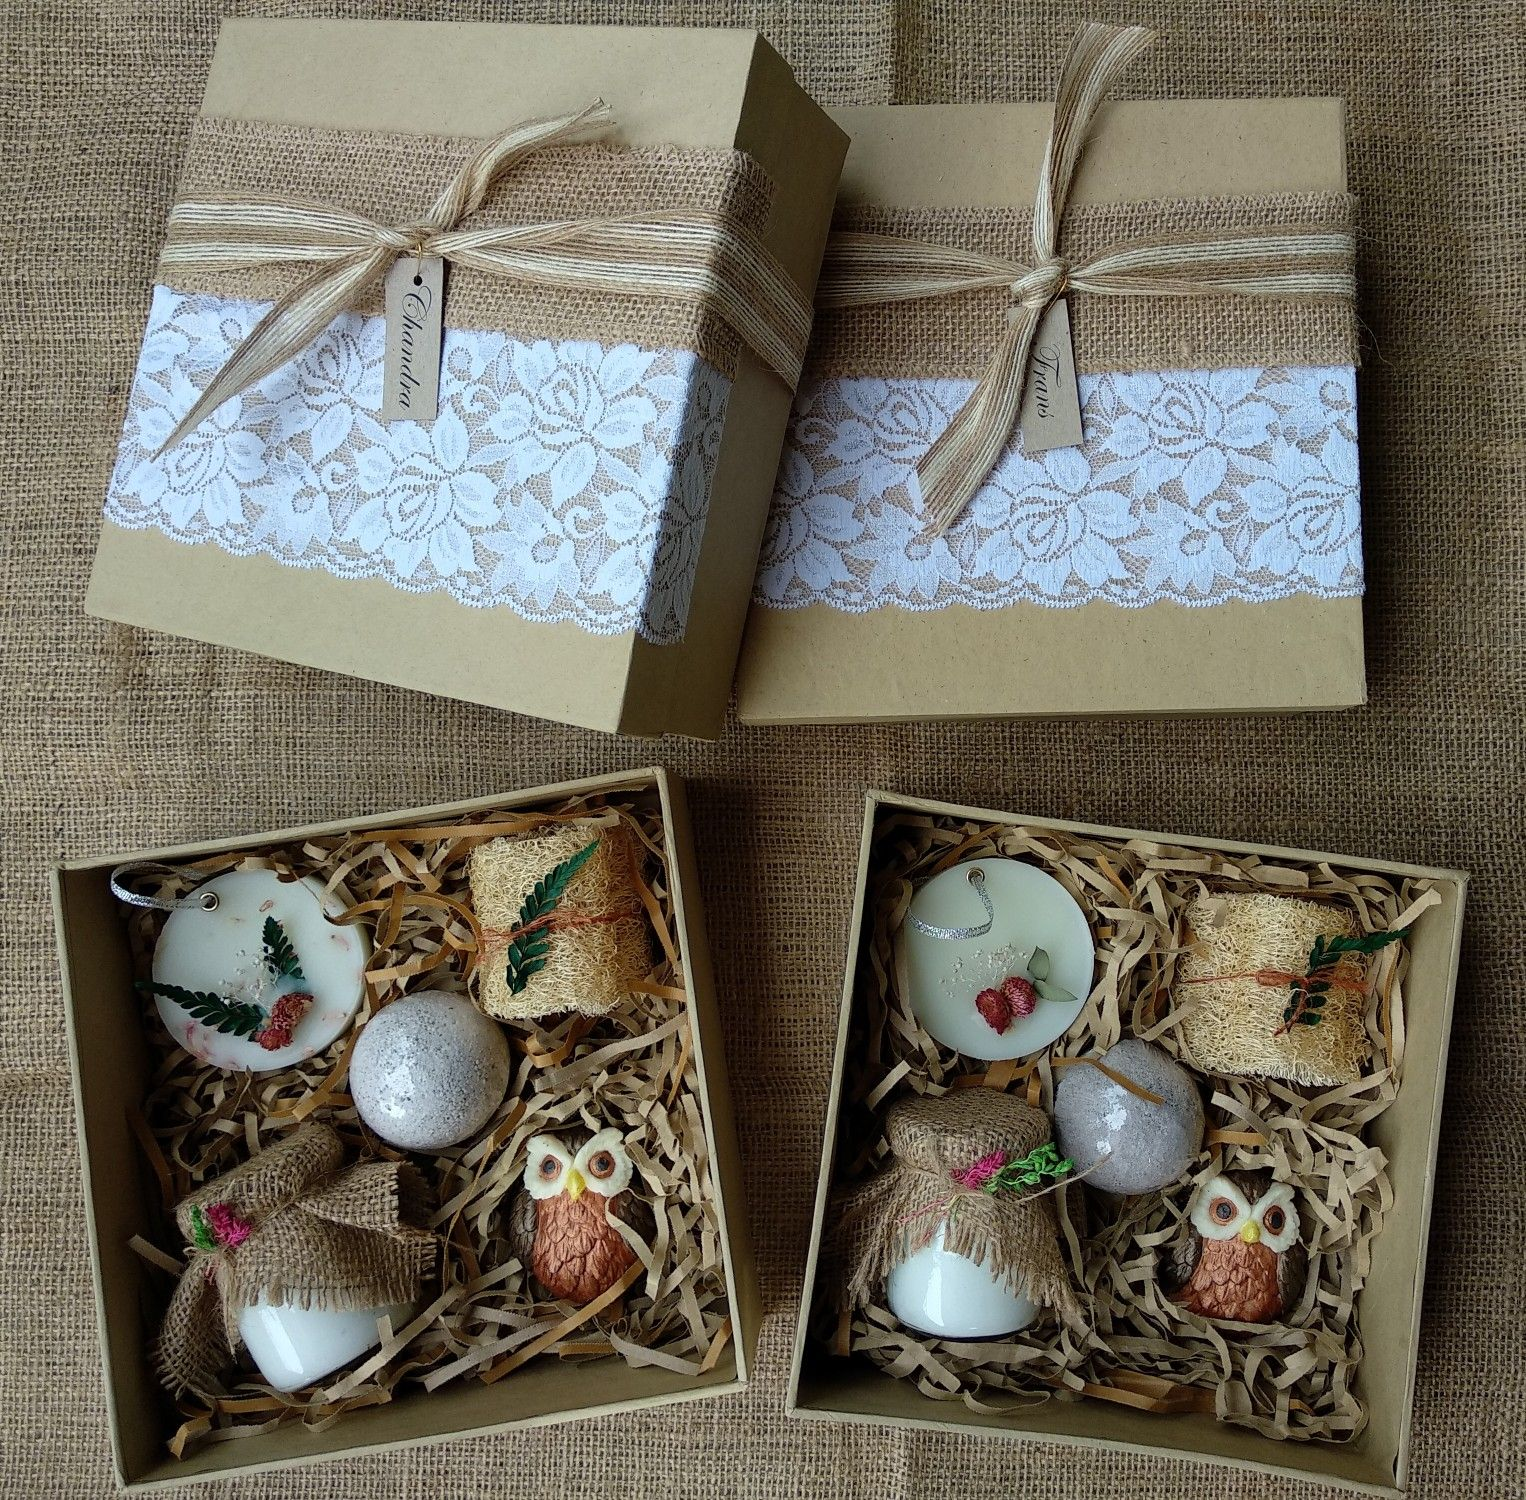 Add To Board Bridesmaids and Groomsmen Gift Boxes by The Rustic Soap - 001 & Bridesmaids and Groomsmen Gift Boxes by The Rustic Soap | Bridestory.com